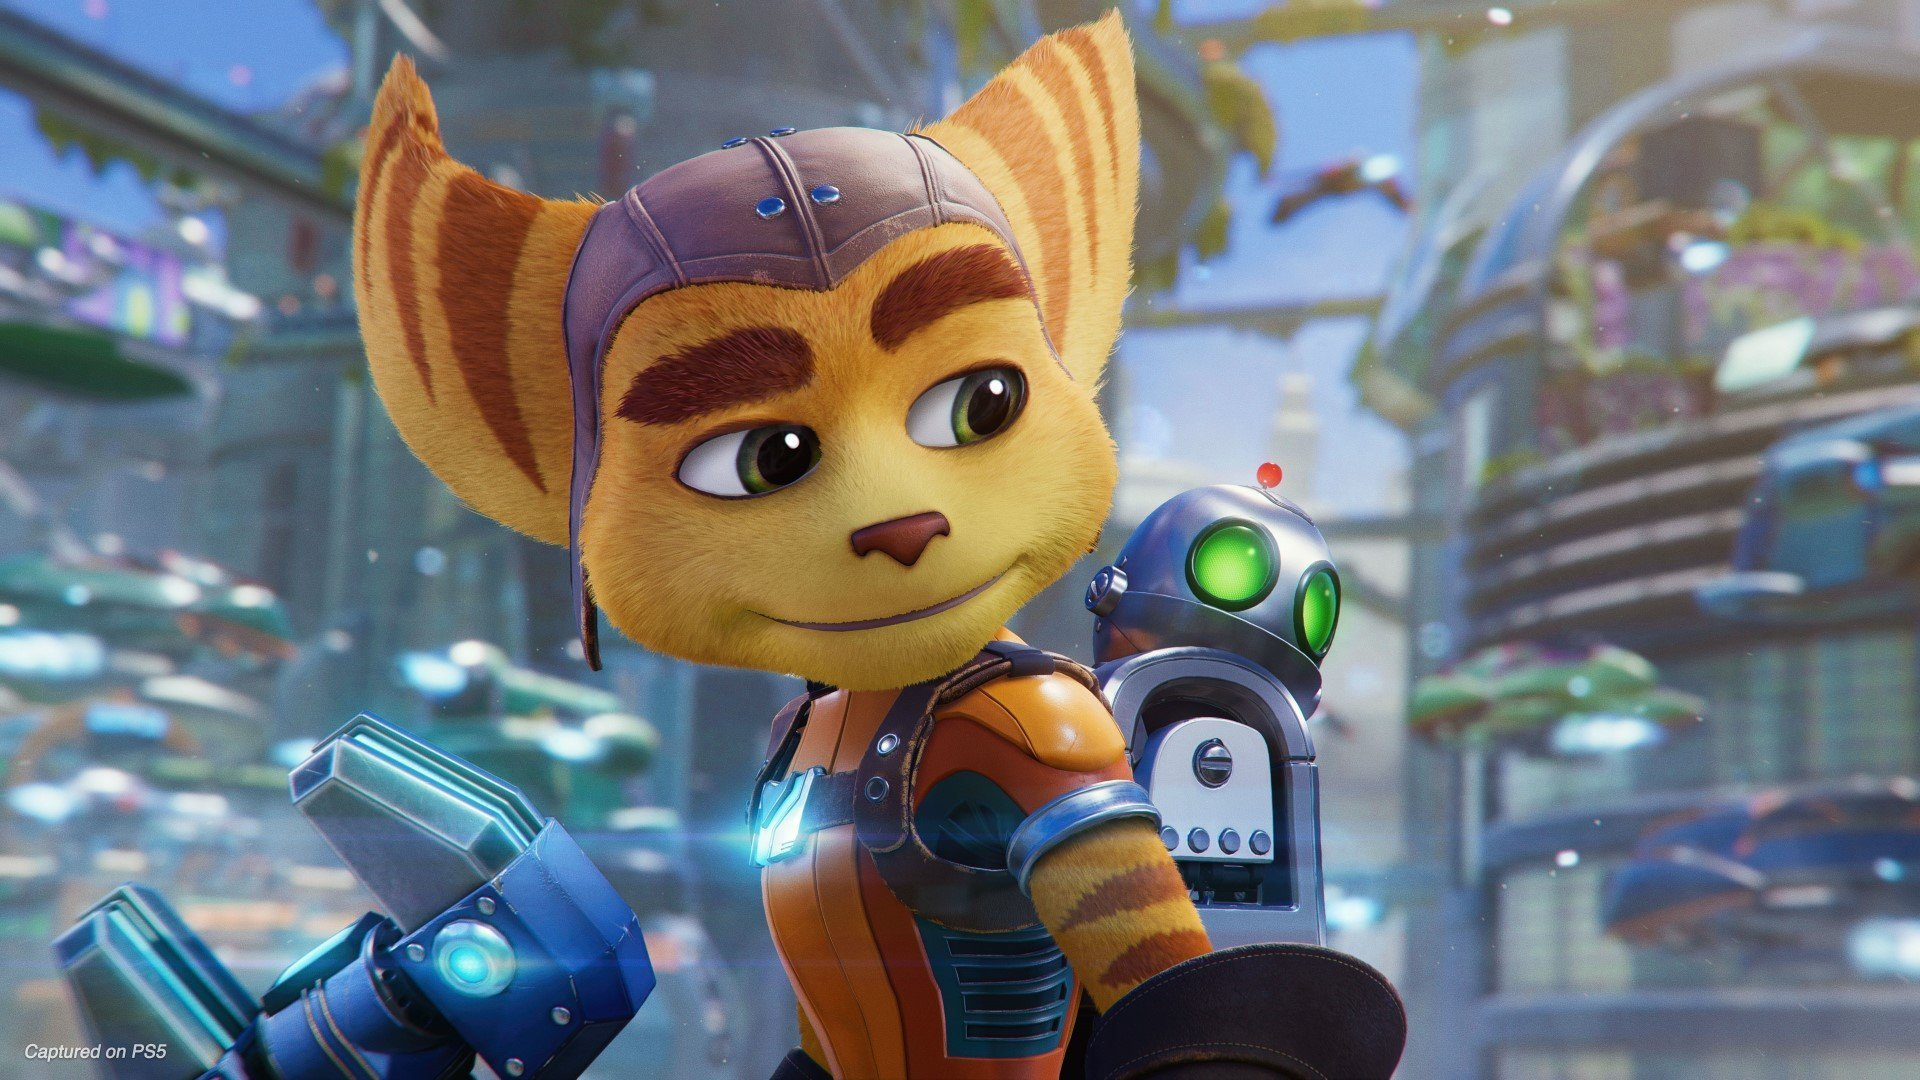 Character Models Ratchet Clank Ps5 Vs Toy Story 1995 Neogaf